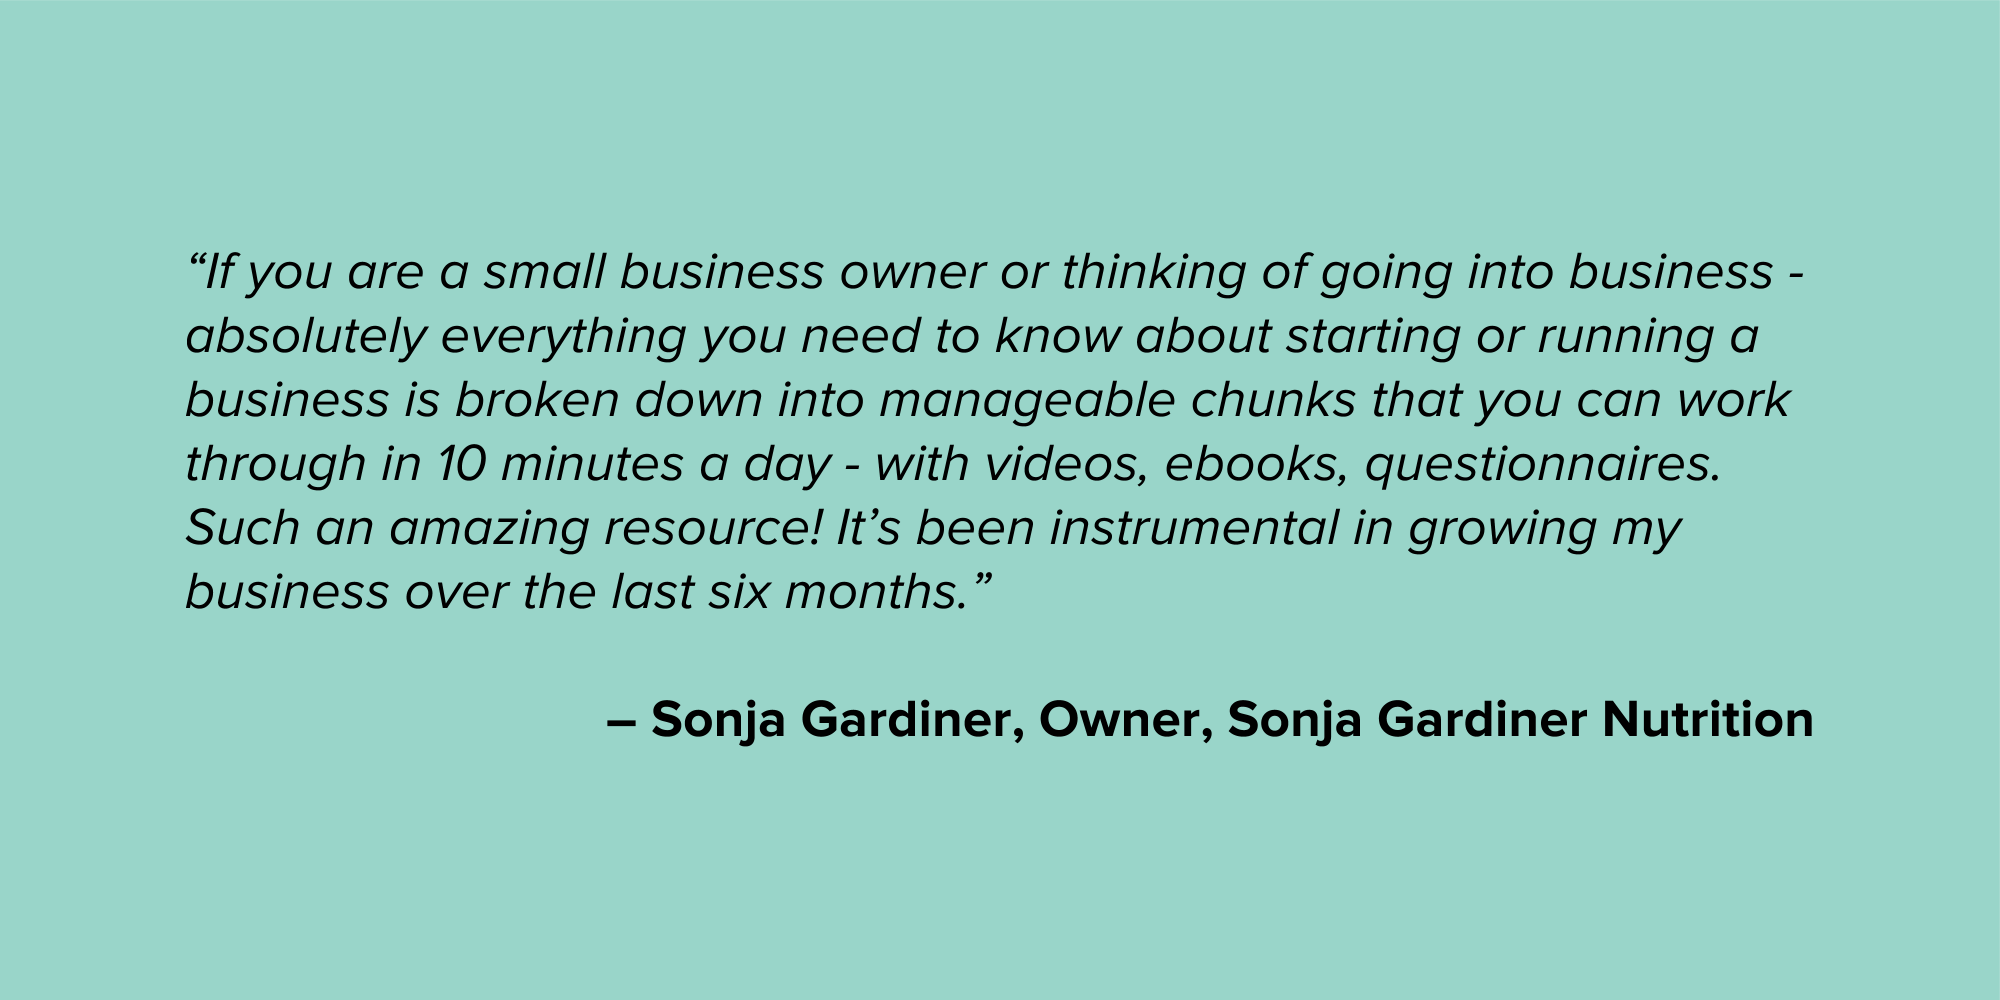 Sonja Gardiner Micro Business Testimonial Quote